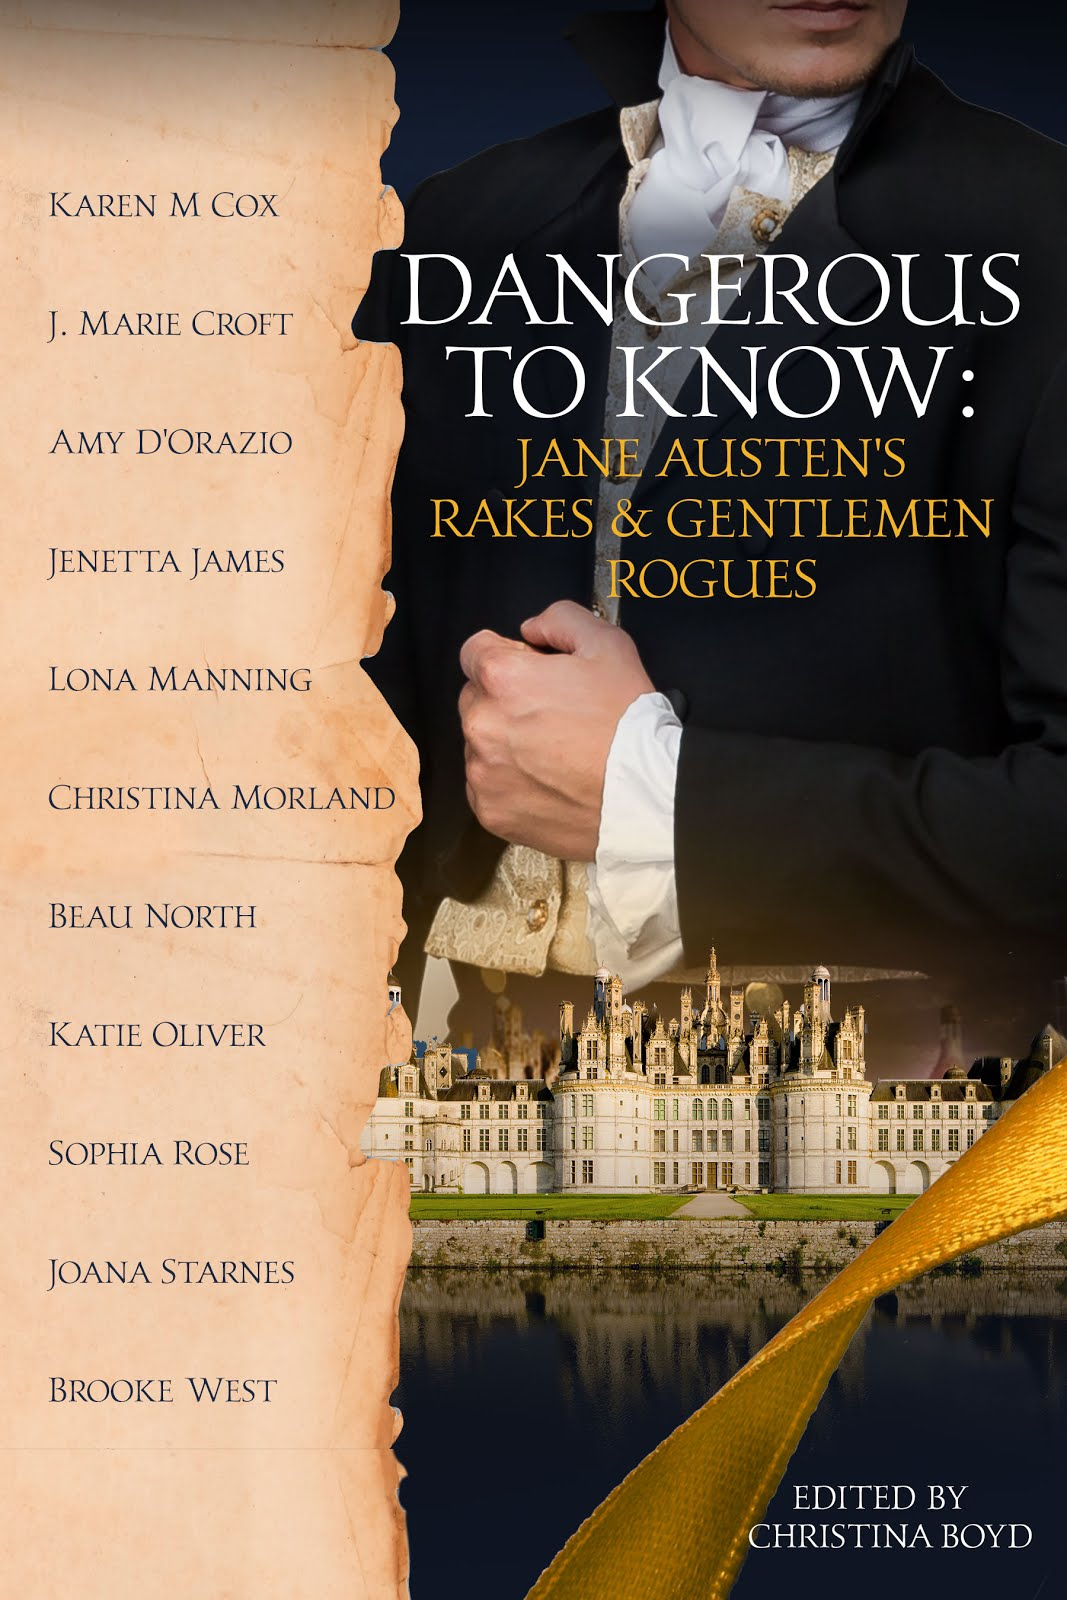 Dangerous to Know: Jane Austen's Rakes and Gentleman Rogues